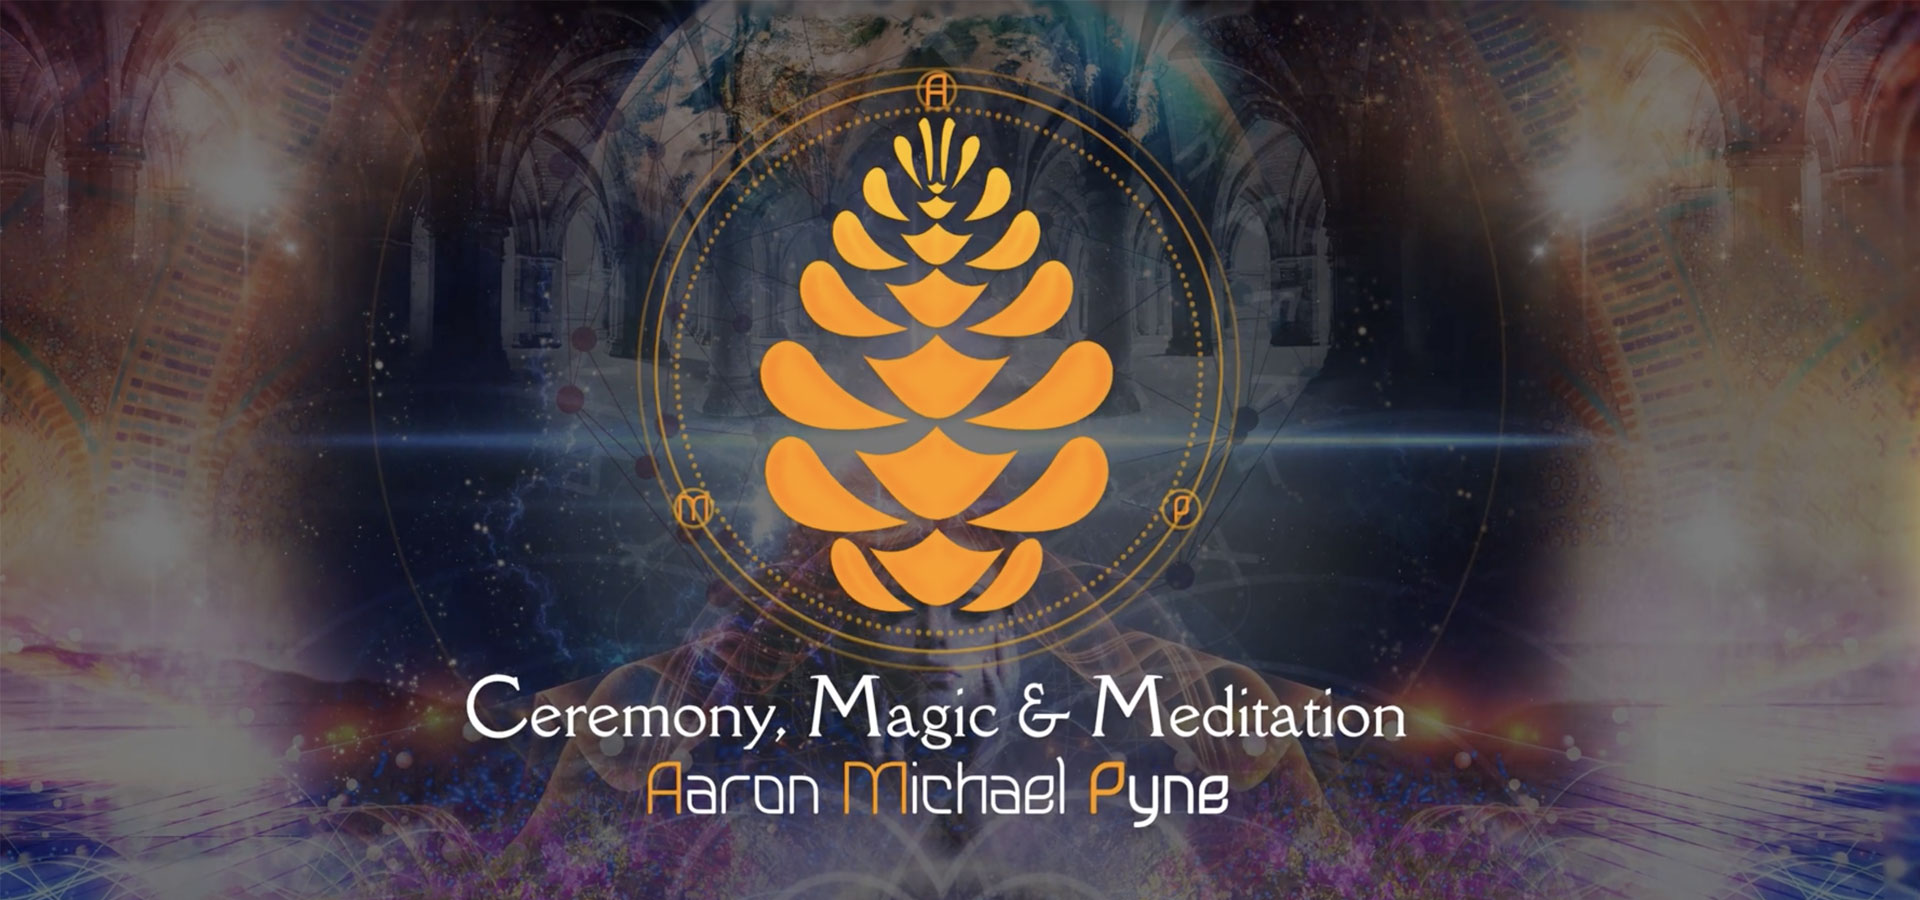 Ceremony Magic Meditation   Expand with Julius and Xpnsion Network